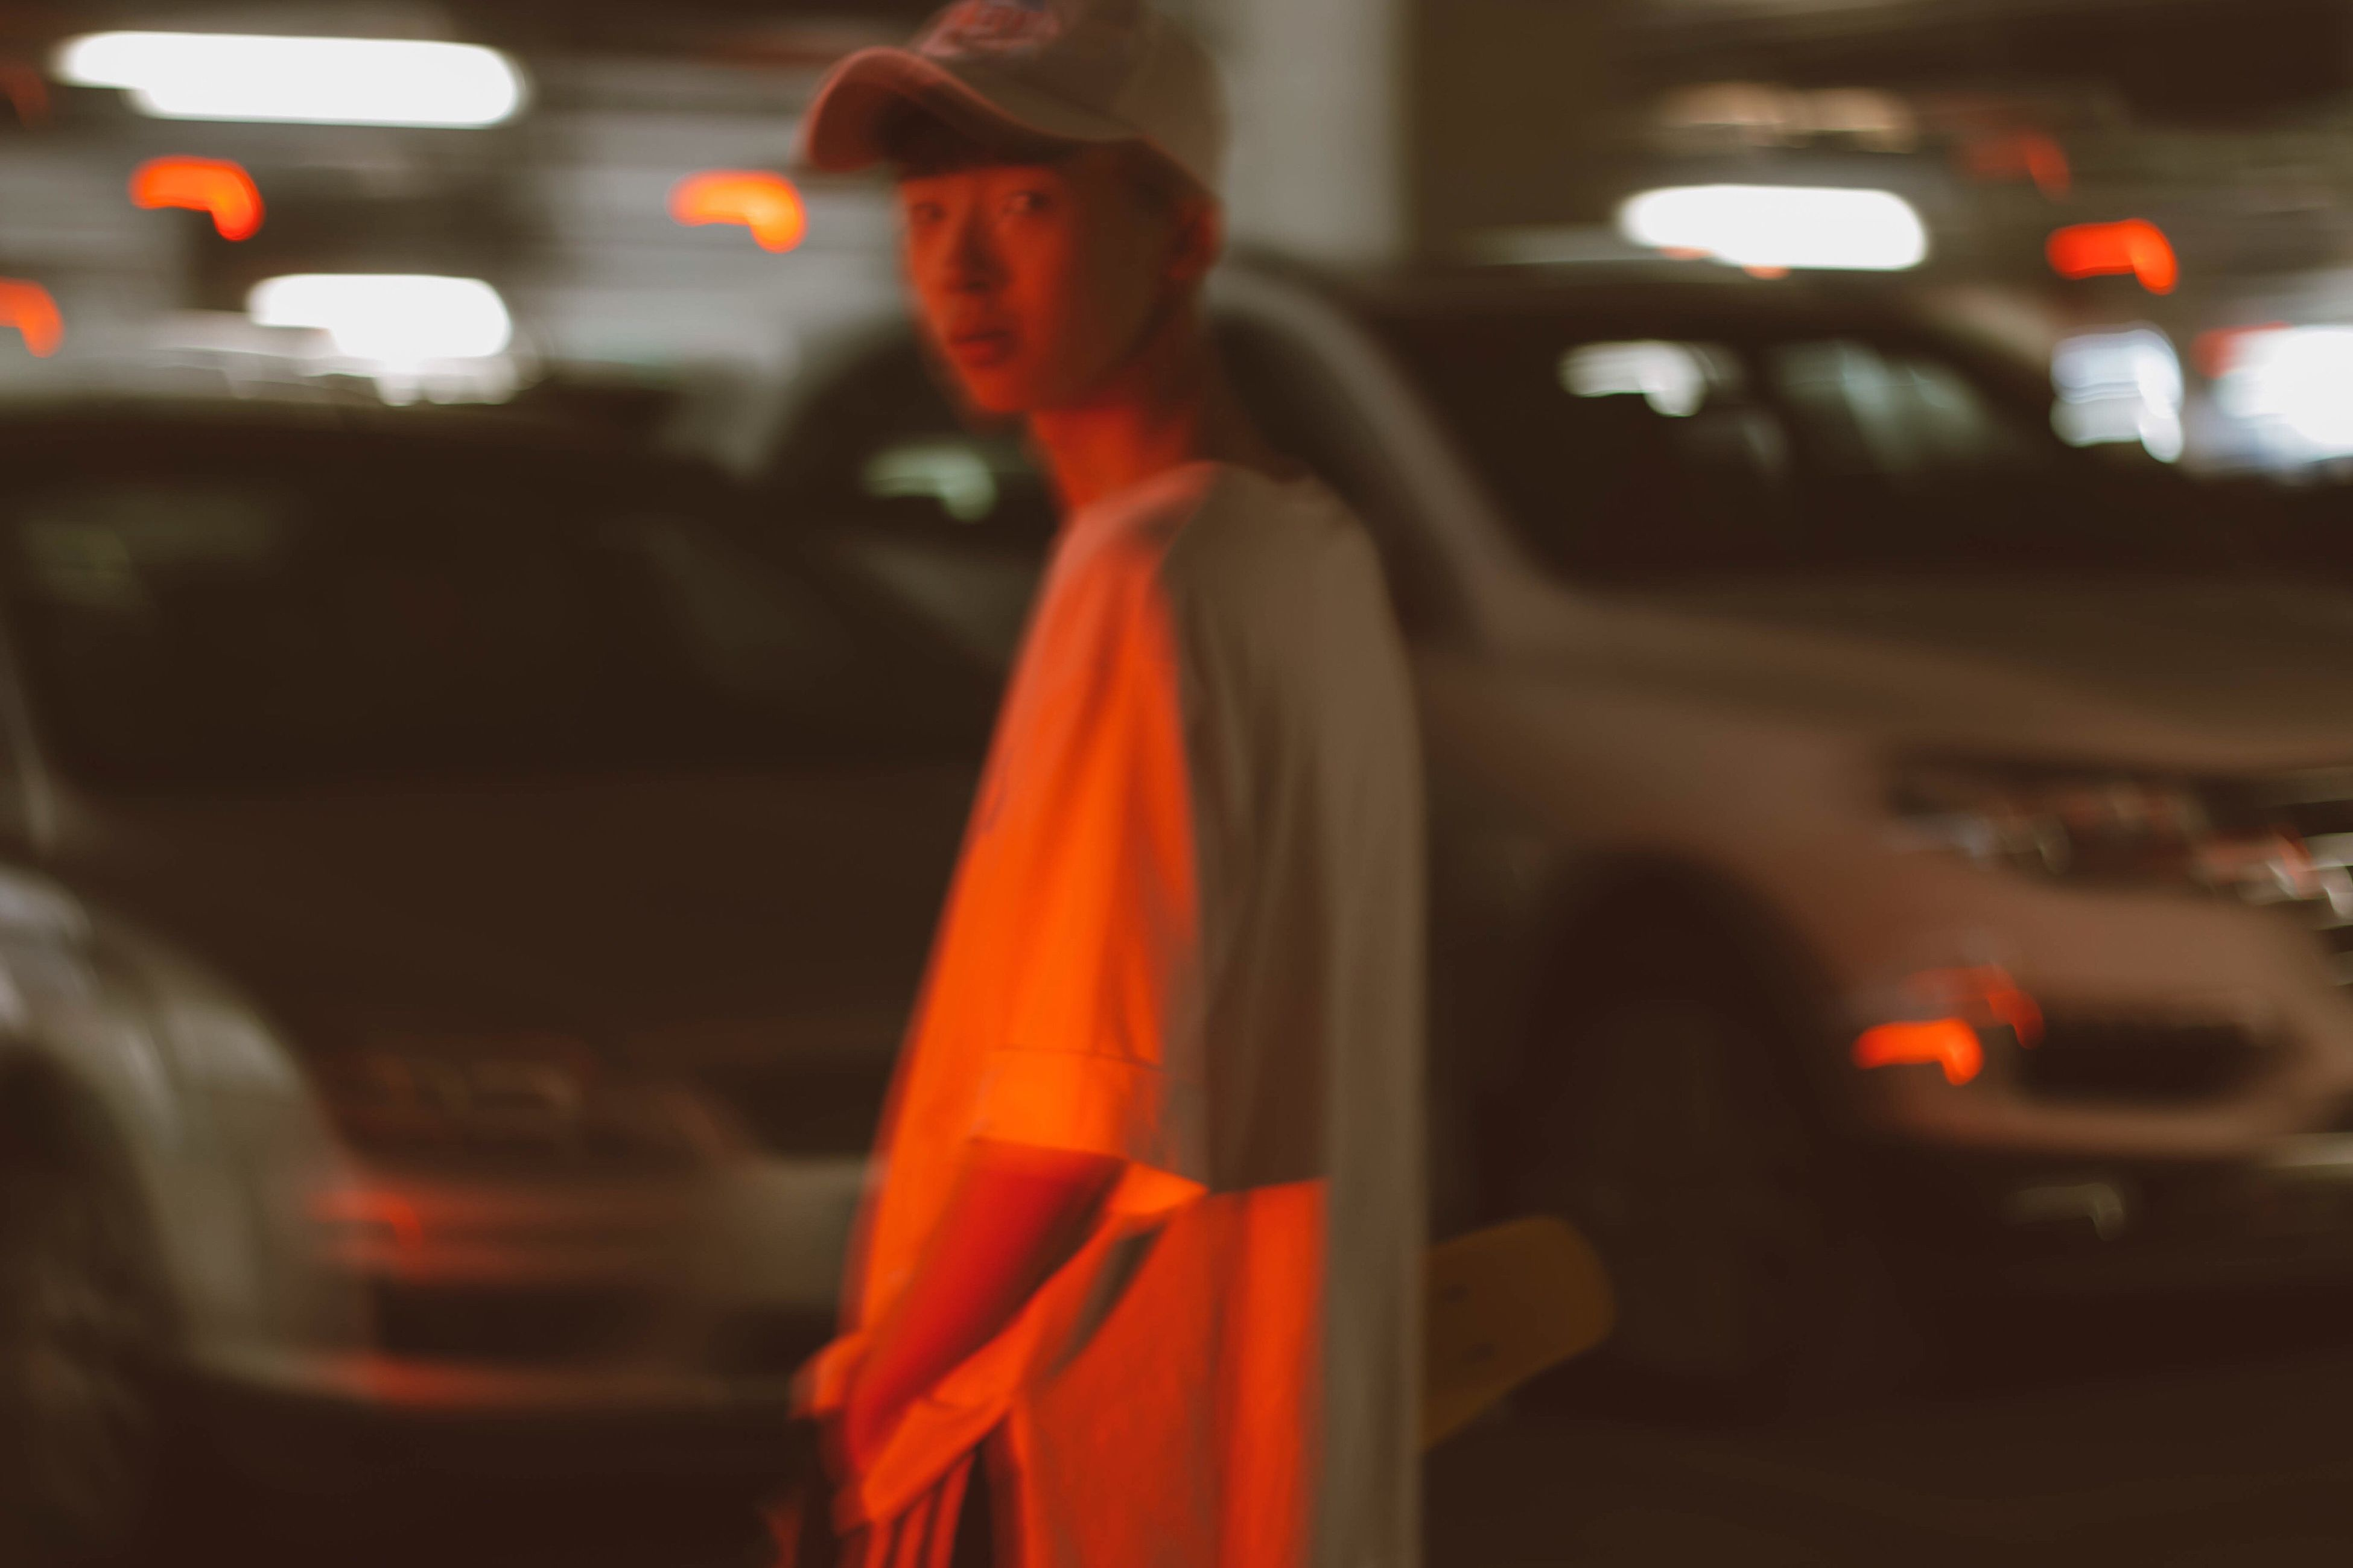 transportation, mode of transport, land vehicle, car, street, blurred motion, travel, focus on foreground, road, illuminated, on the move, incidental people, red, motion, city, public transportation, night, city life